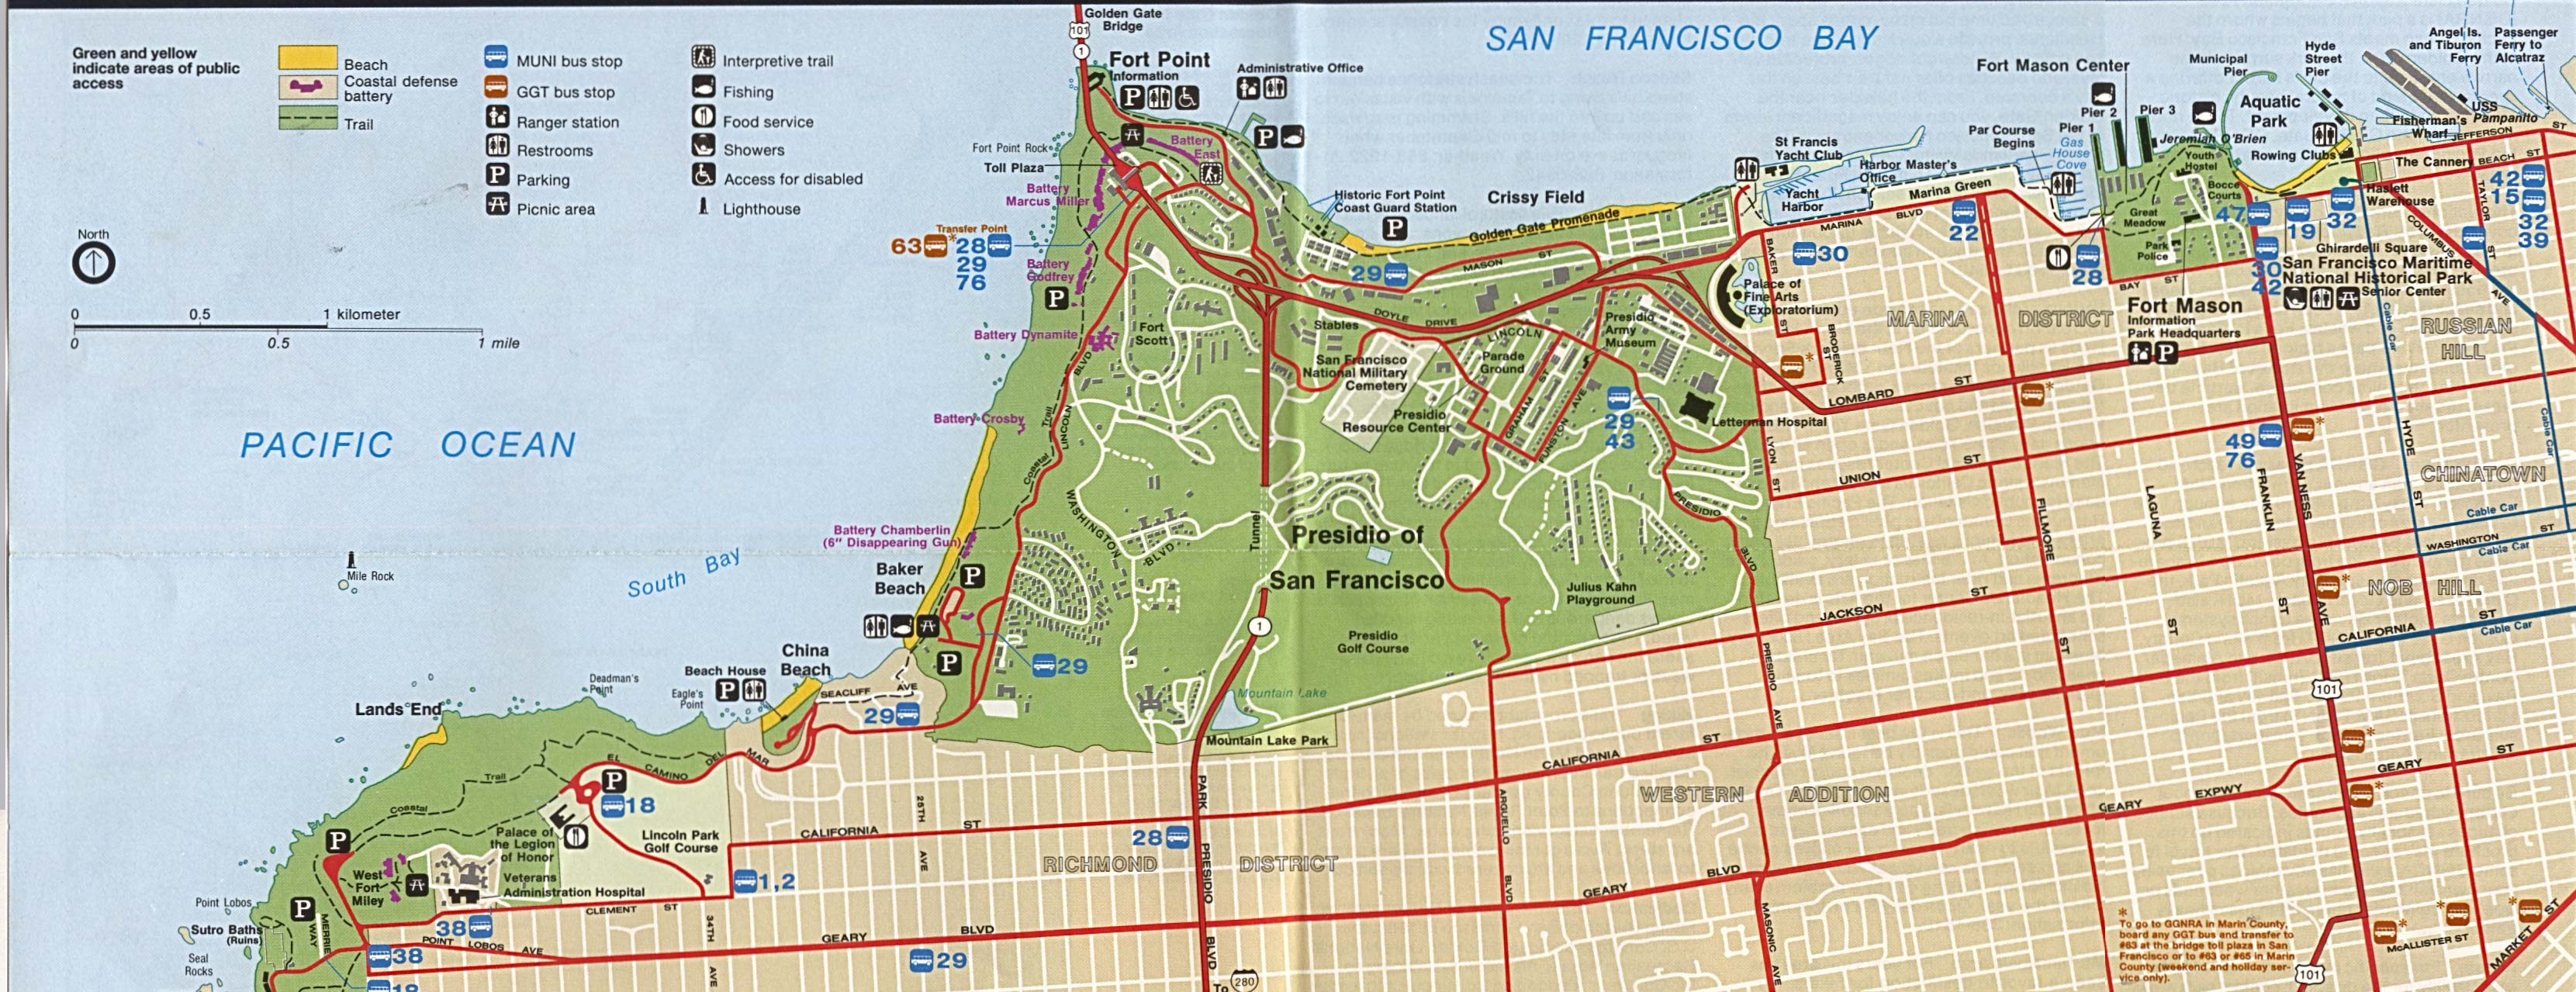 Park Map of Golden Gate National Recreation Area (North), California, United States